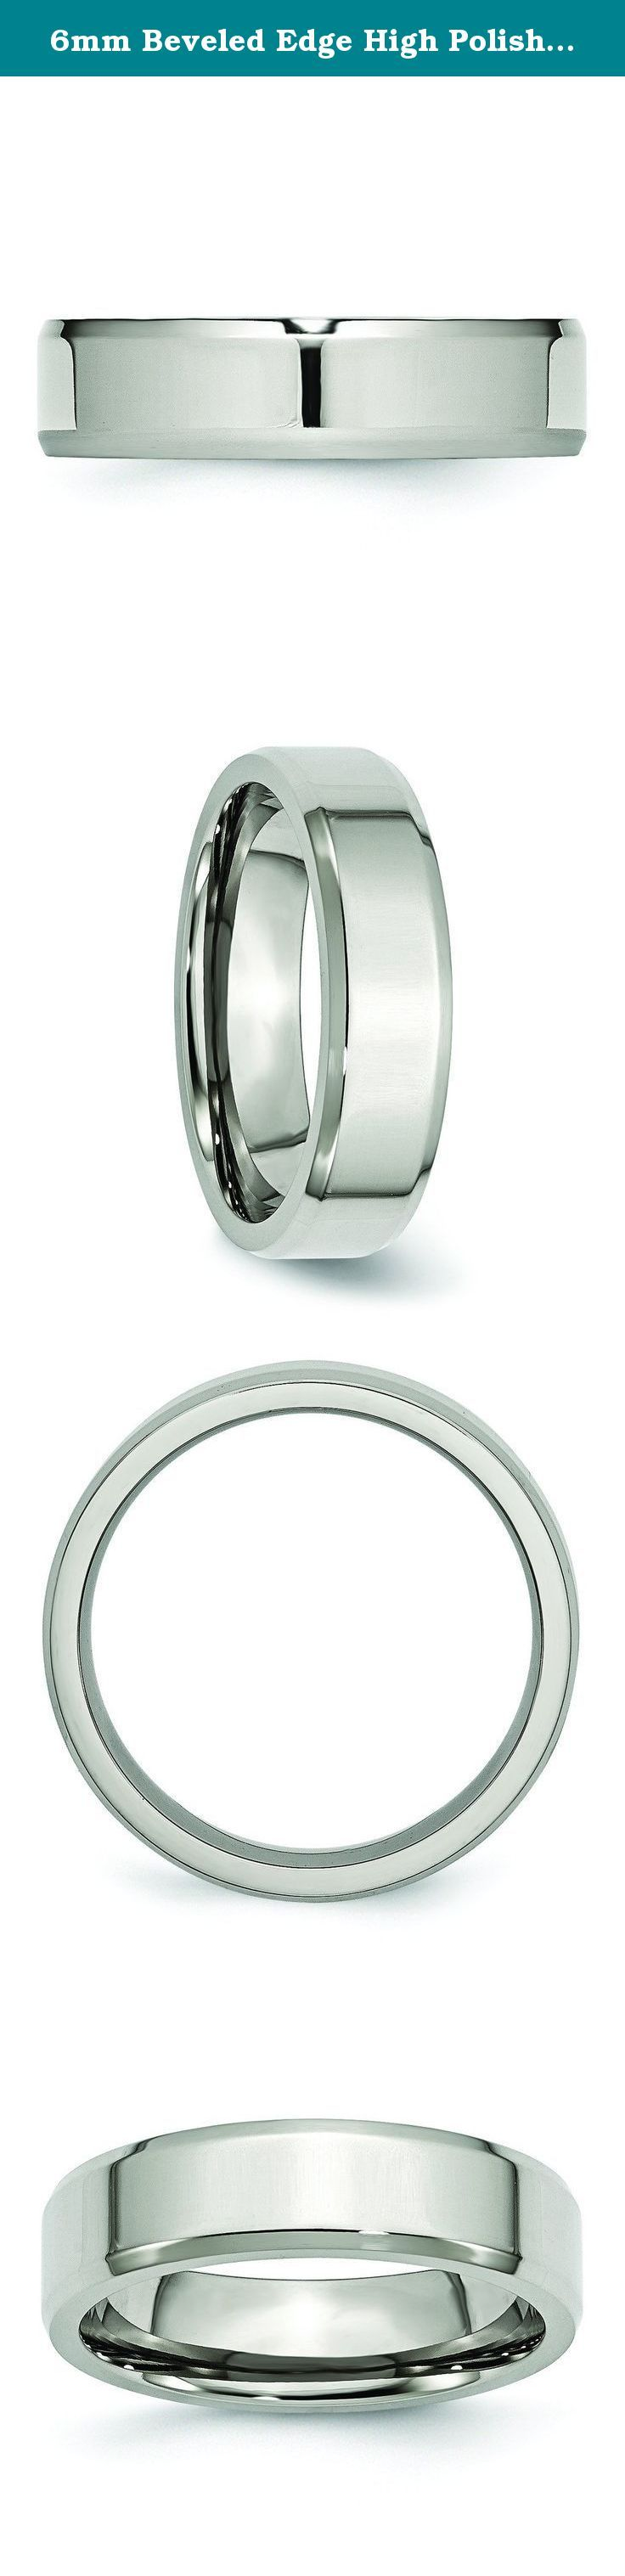 """6mm Beveled Edge High Polish Finish Stainless Steel Contemporary Wedding Band - Size 12. There are various grades of Stainless Steel in the marketplace. 316L Stainless Steel is the material we use to create the jewelry in this collection. """"L"""" stands for low carbon. 316L is used to avoid corrosion problems caused by welding and does not develop surface rust. It is very fashionable in color, can be plated and is easily personalized with engraved sentiments. -Forever Flawless Jewelry-."""